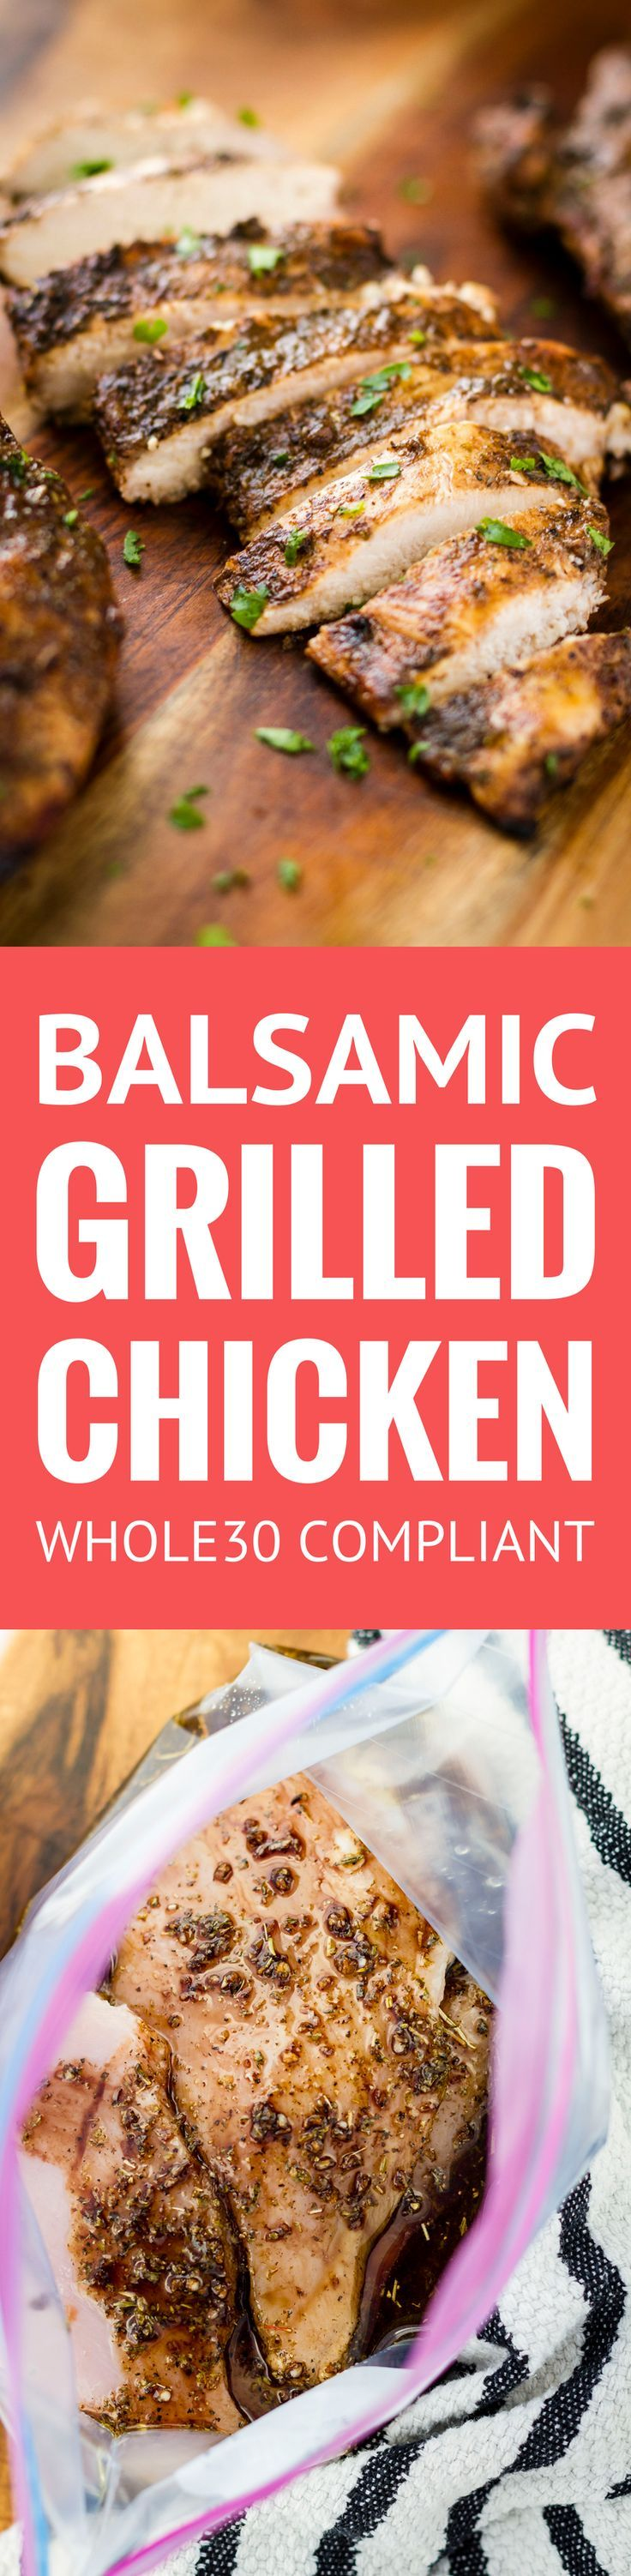 This balsamic grilled chicken recipe makes the most juicy & succulent boneless skinless breasts EVER w/ just 4 ingredients! And it's Whole30 compliant...